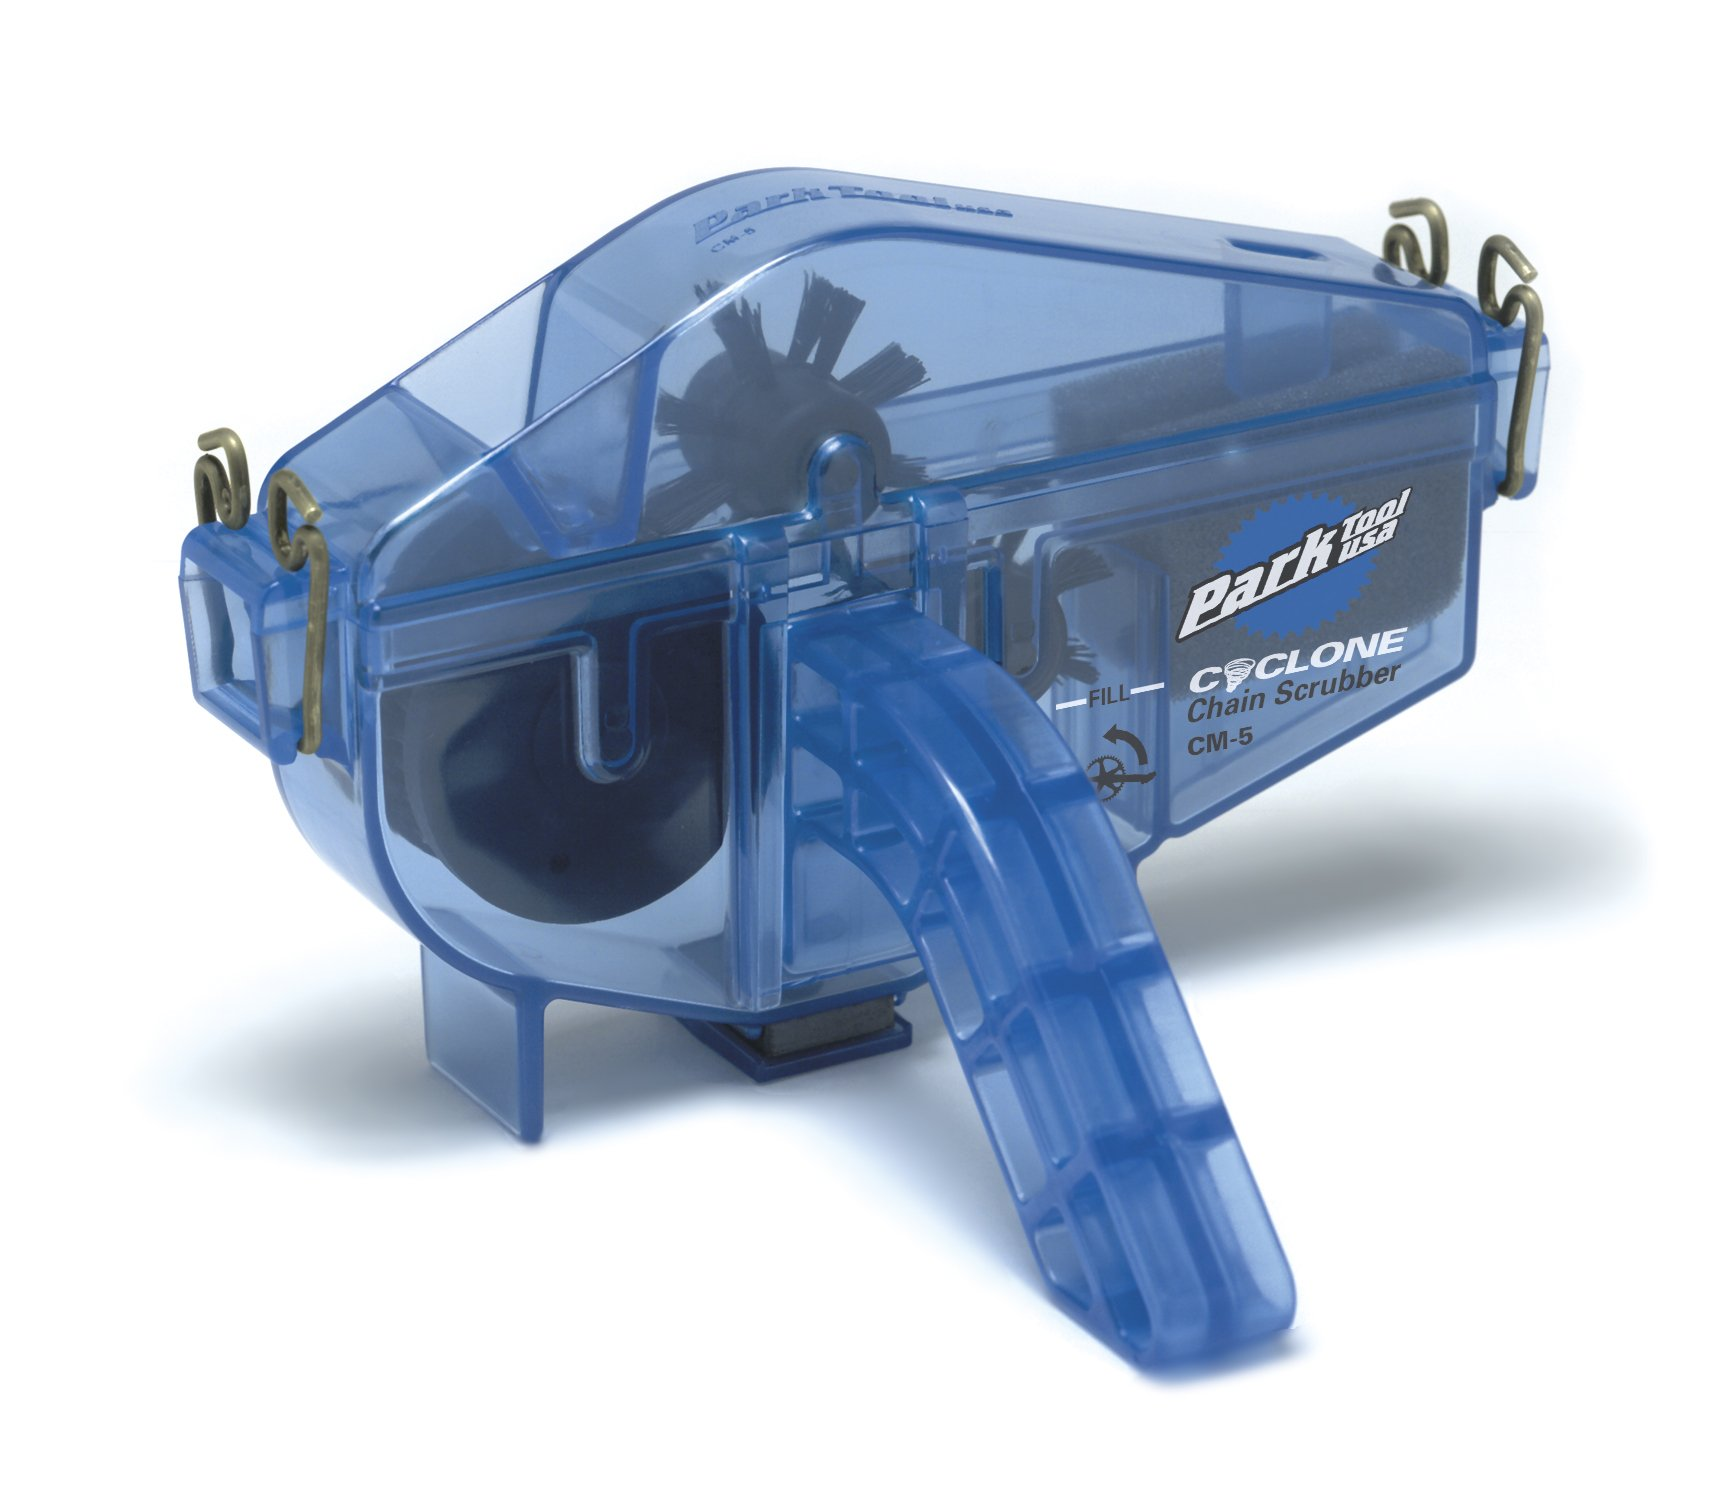 Park Tool CM-5.2 Cyclone Chain Cleaner